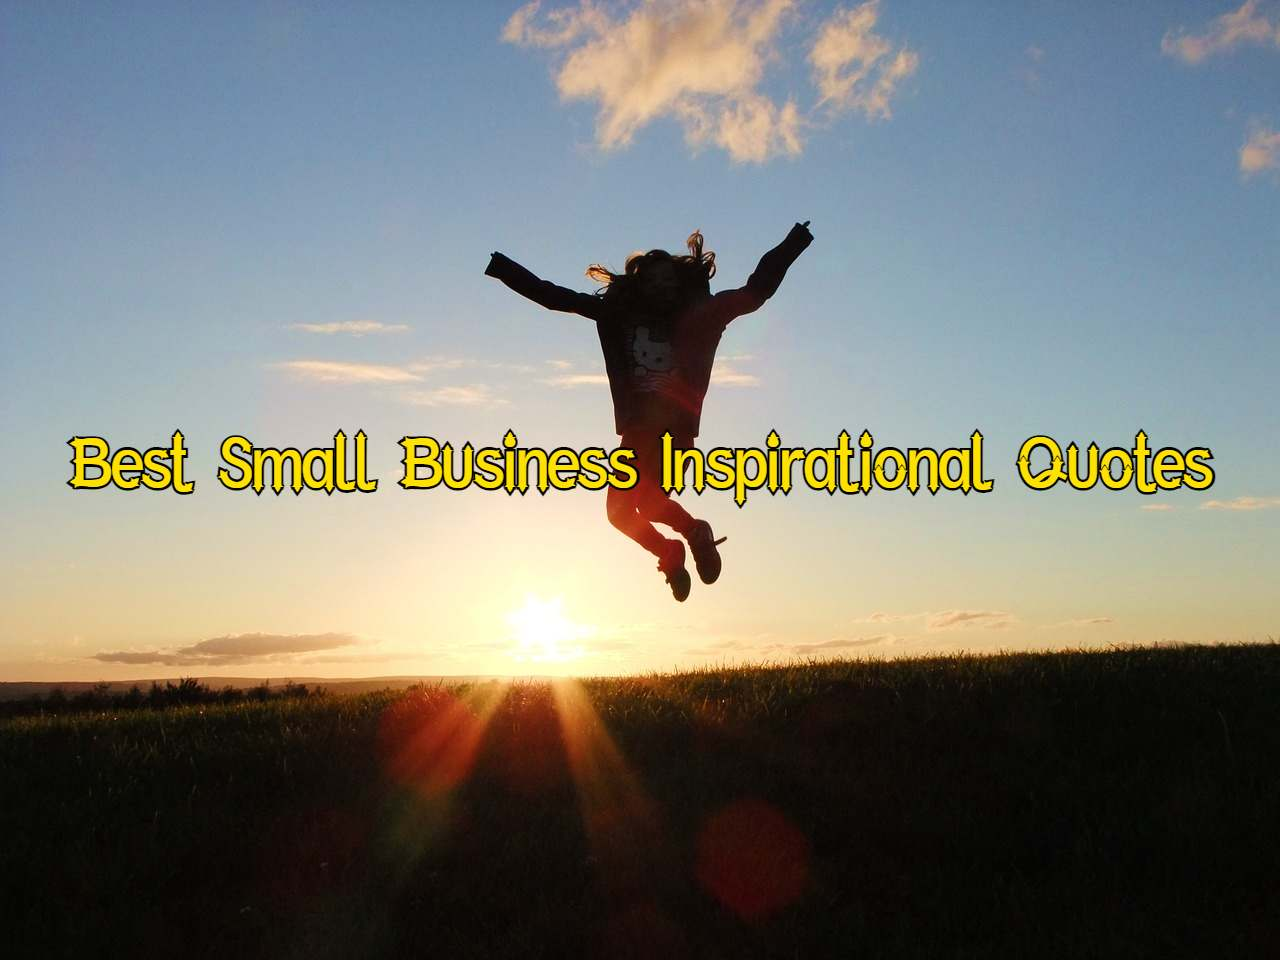 Small Business Inspirational Quotes